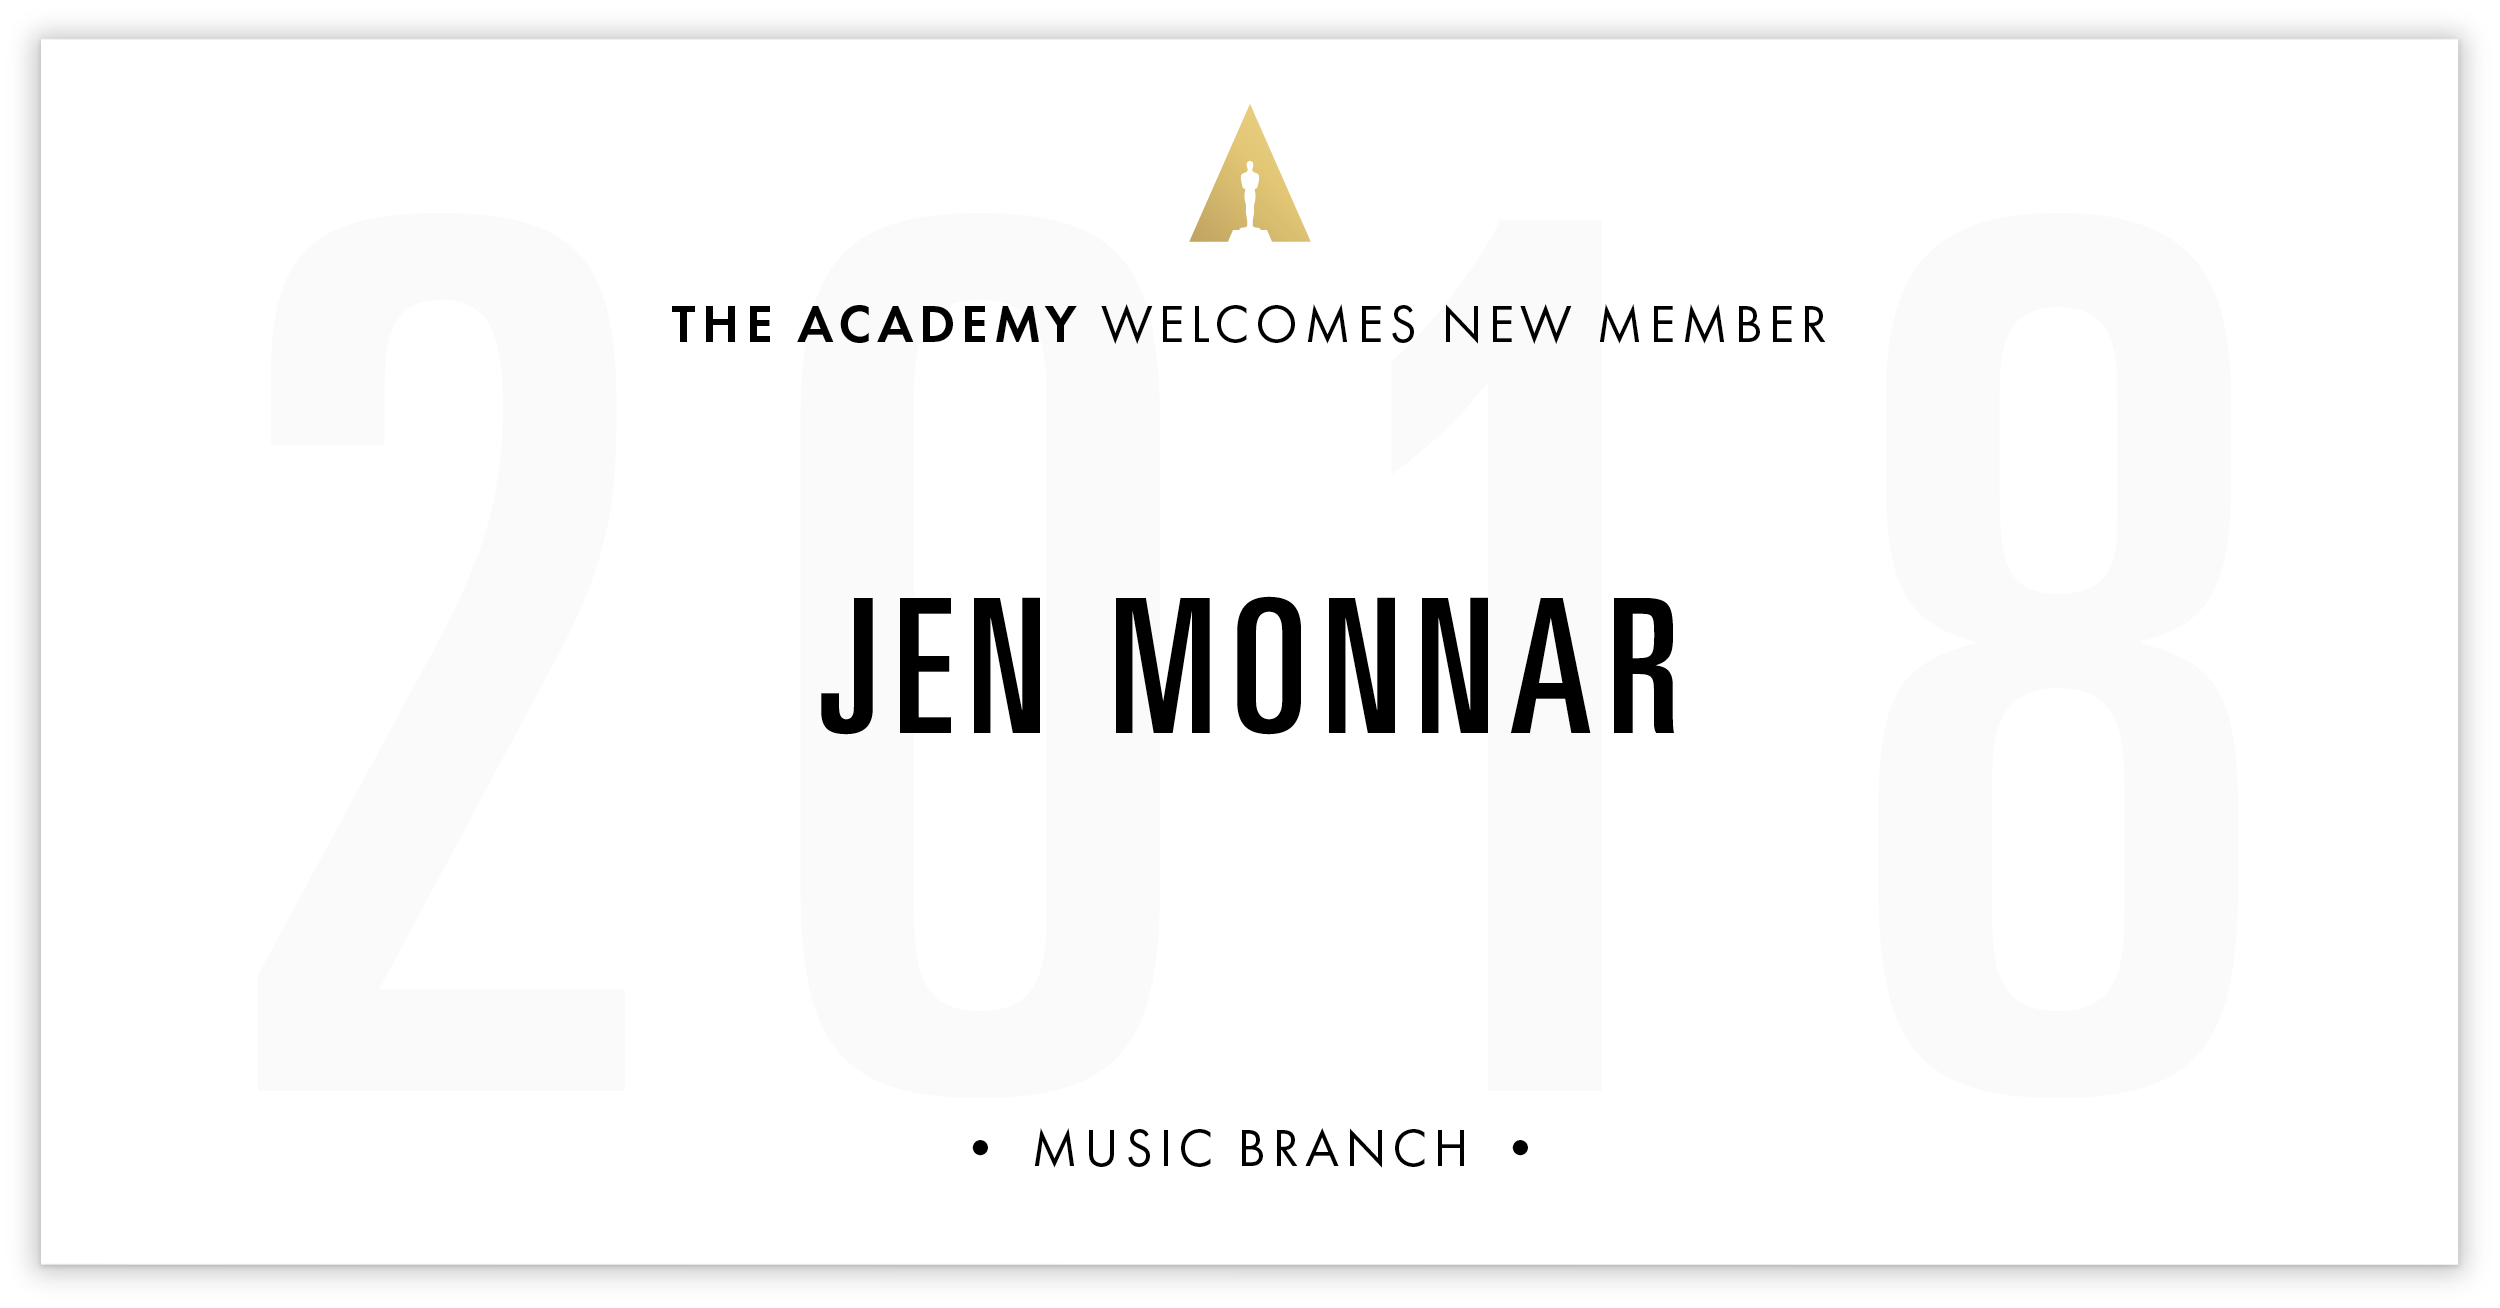 Jen Monnar is invited!